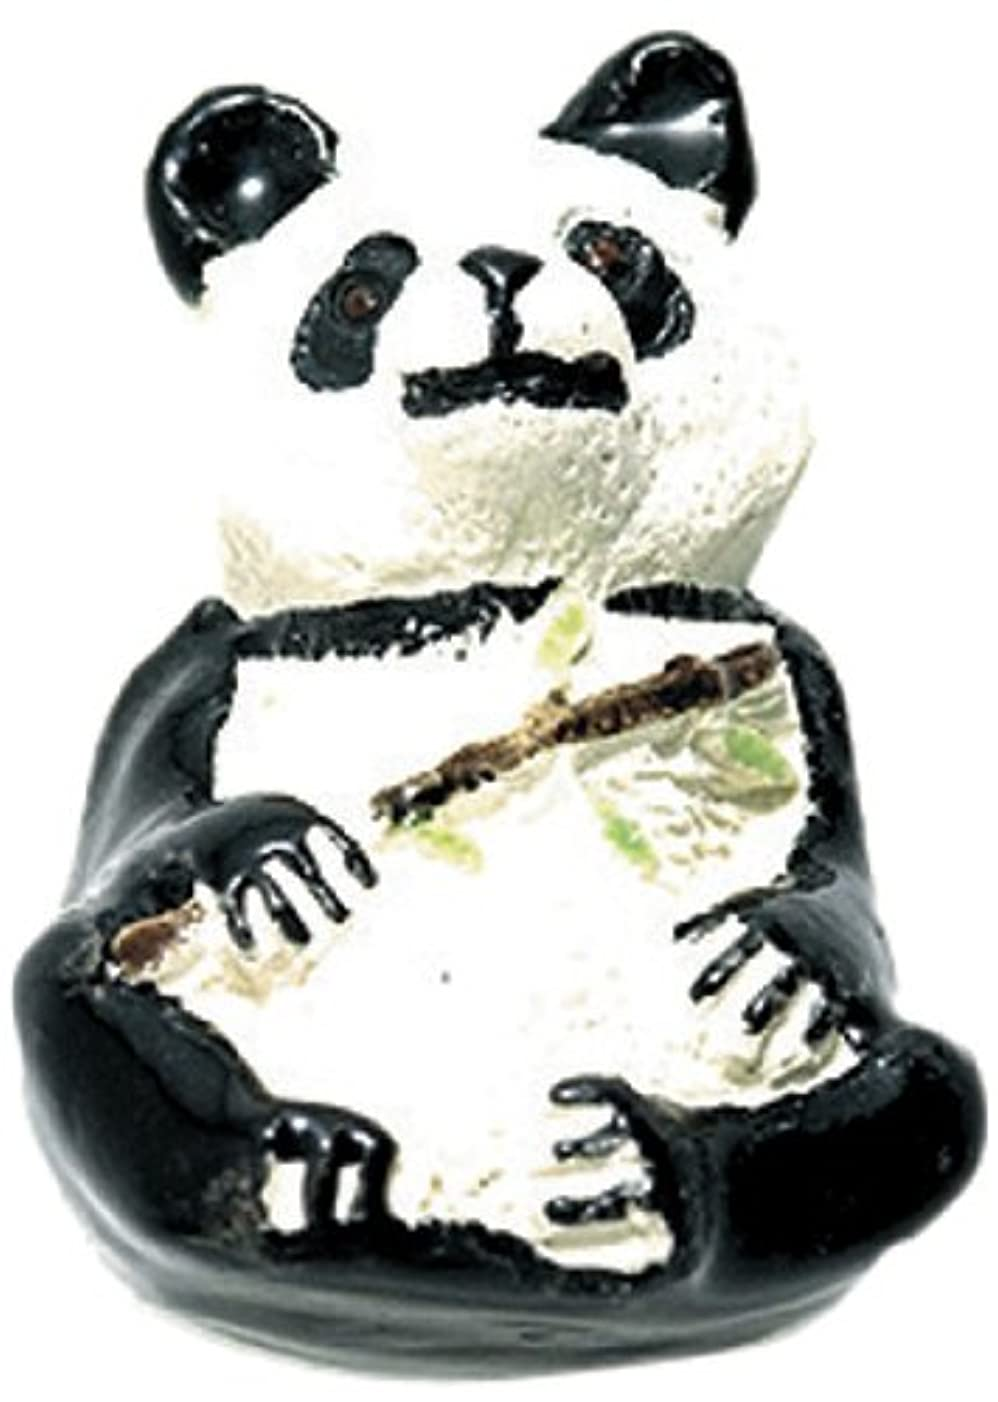 Shipwreck Beads 17 by 26mm Peruvian Hand Crafted Large Ceramic Panda Beads with Bamboo, Black, 3 Per Pack